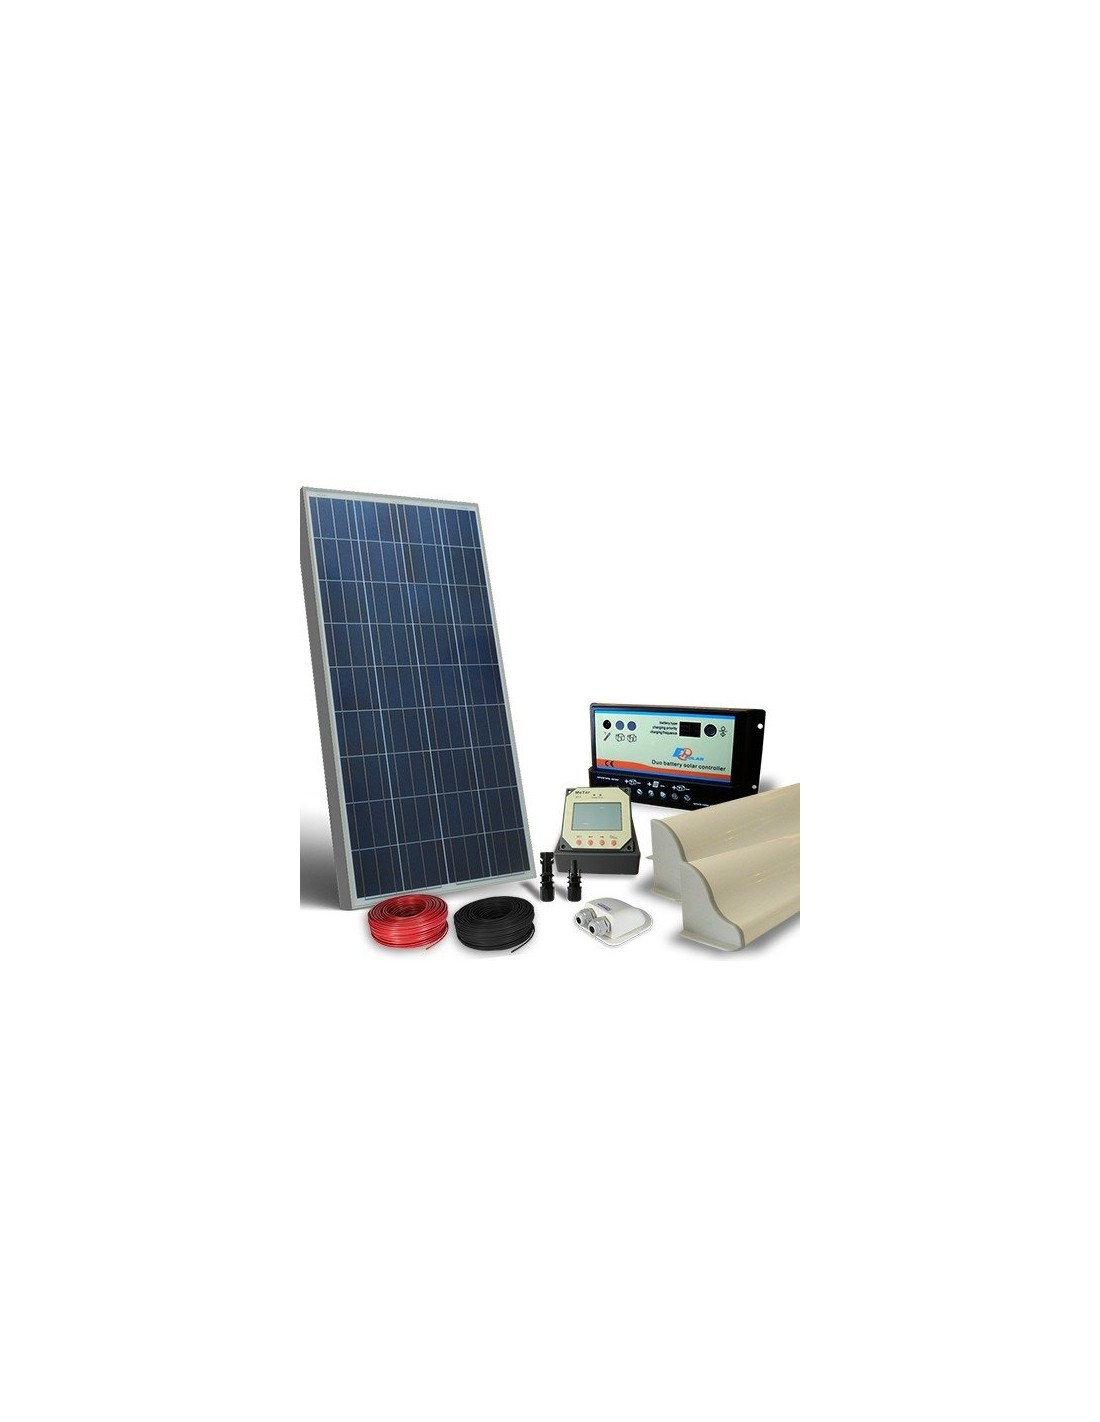 Kit solar camper 100w 12v pro panel fotovoltaico for Kit solar fotovoltaico